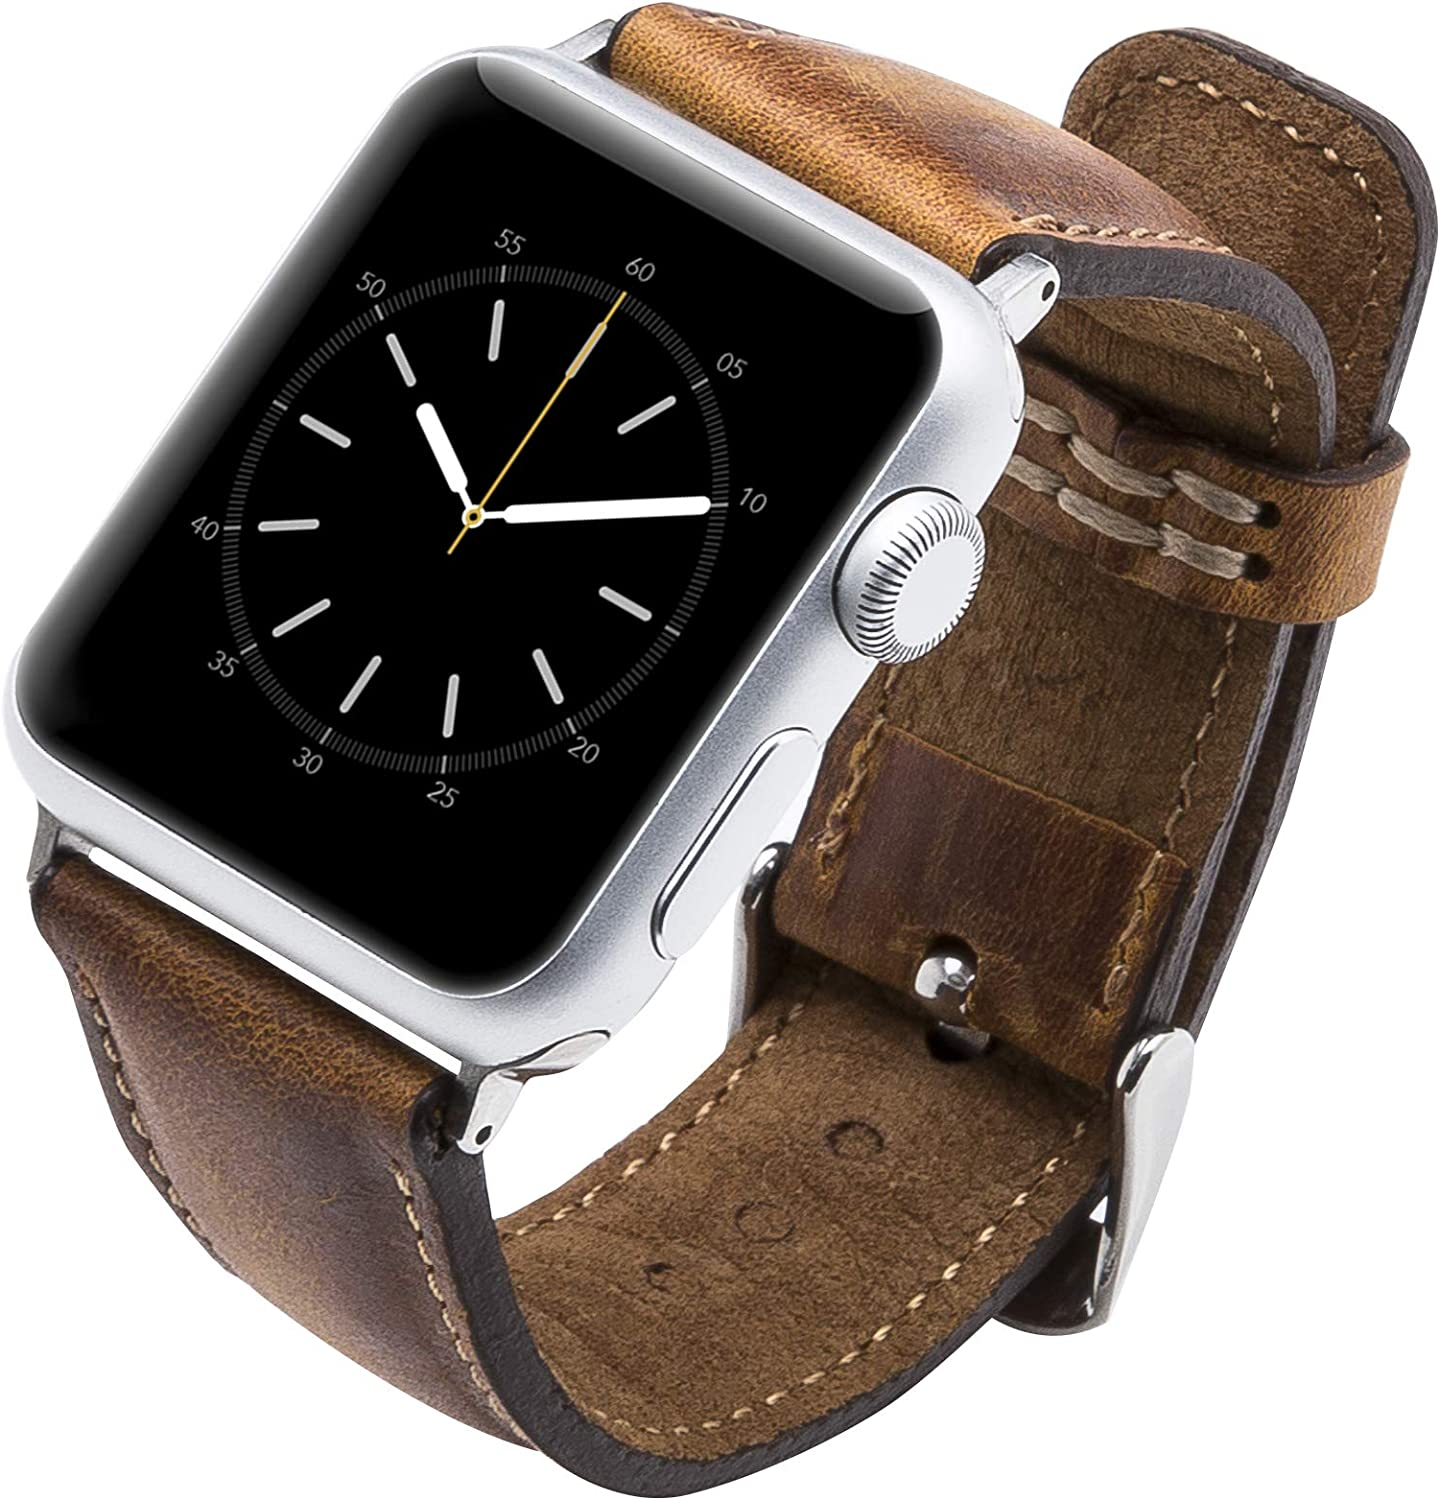 Venito Tuscany Leather Watch Band Compatible with Apple Watch 38mm 40mm - Watch Strap Designed for iwatch Series 1 2 3 4 5 6 SE (Antique Brown w/Silver Connector & Clasp)